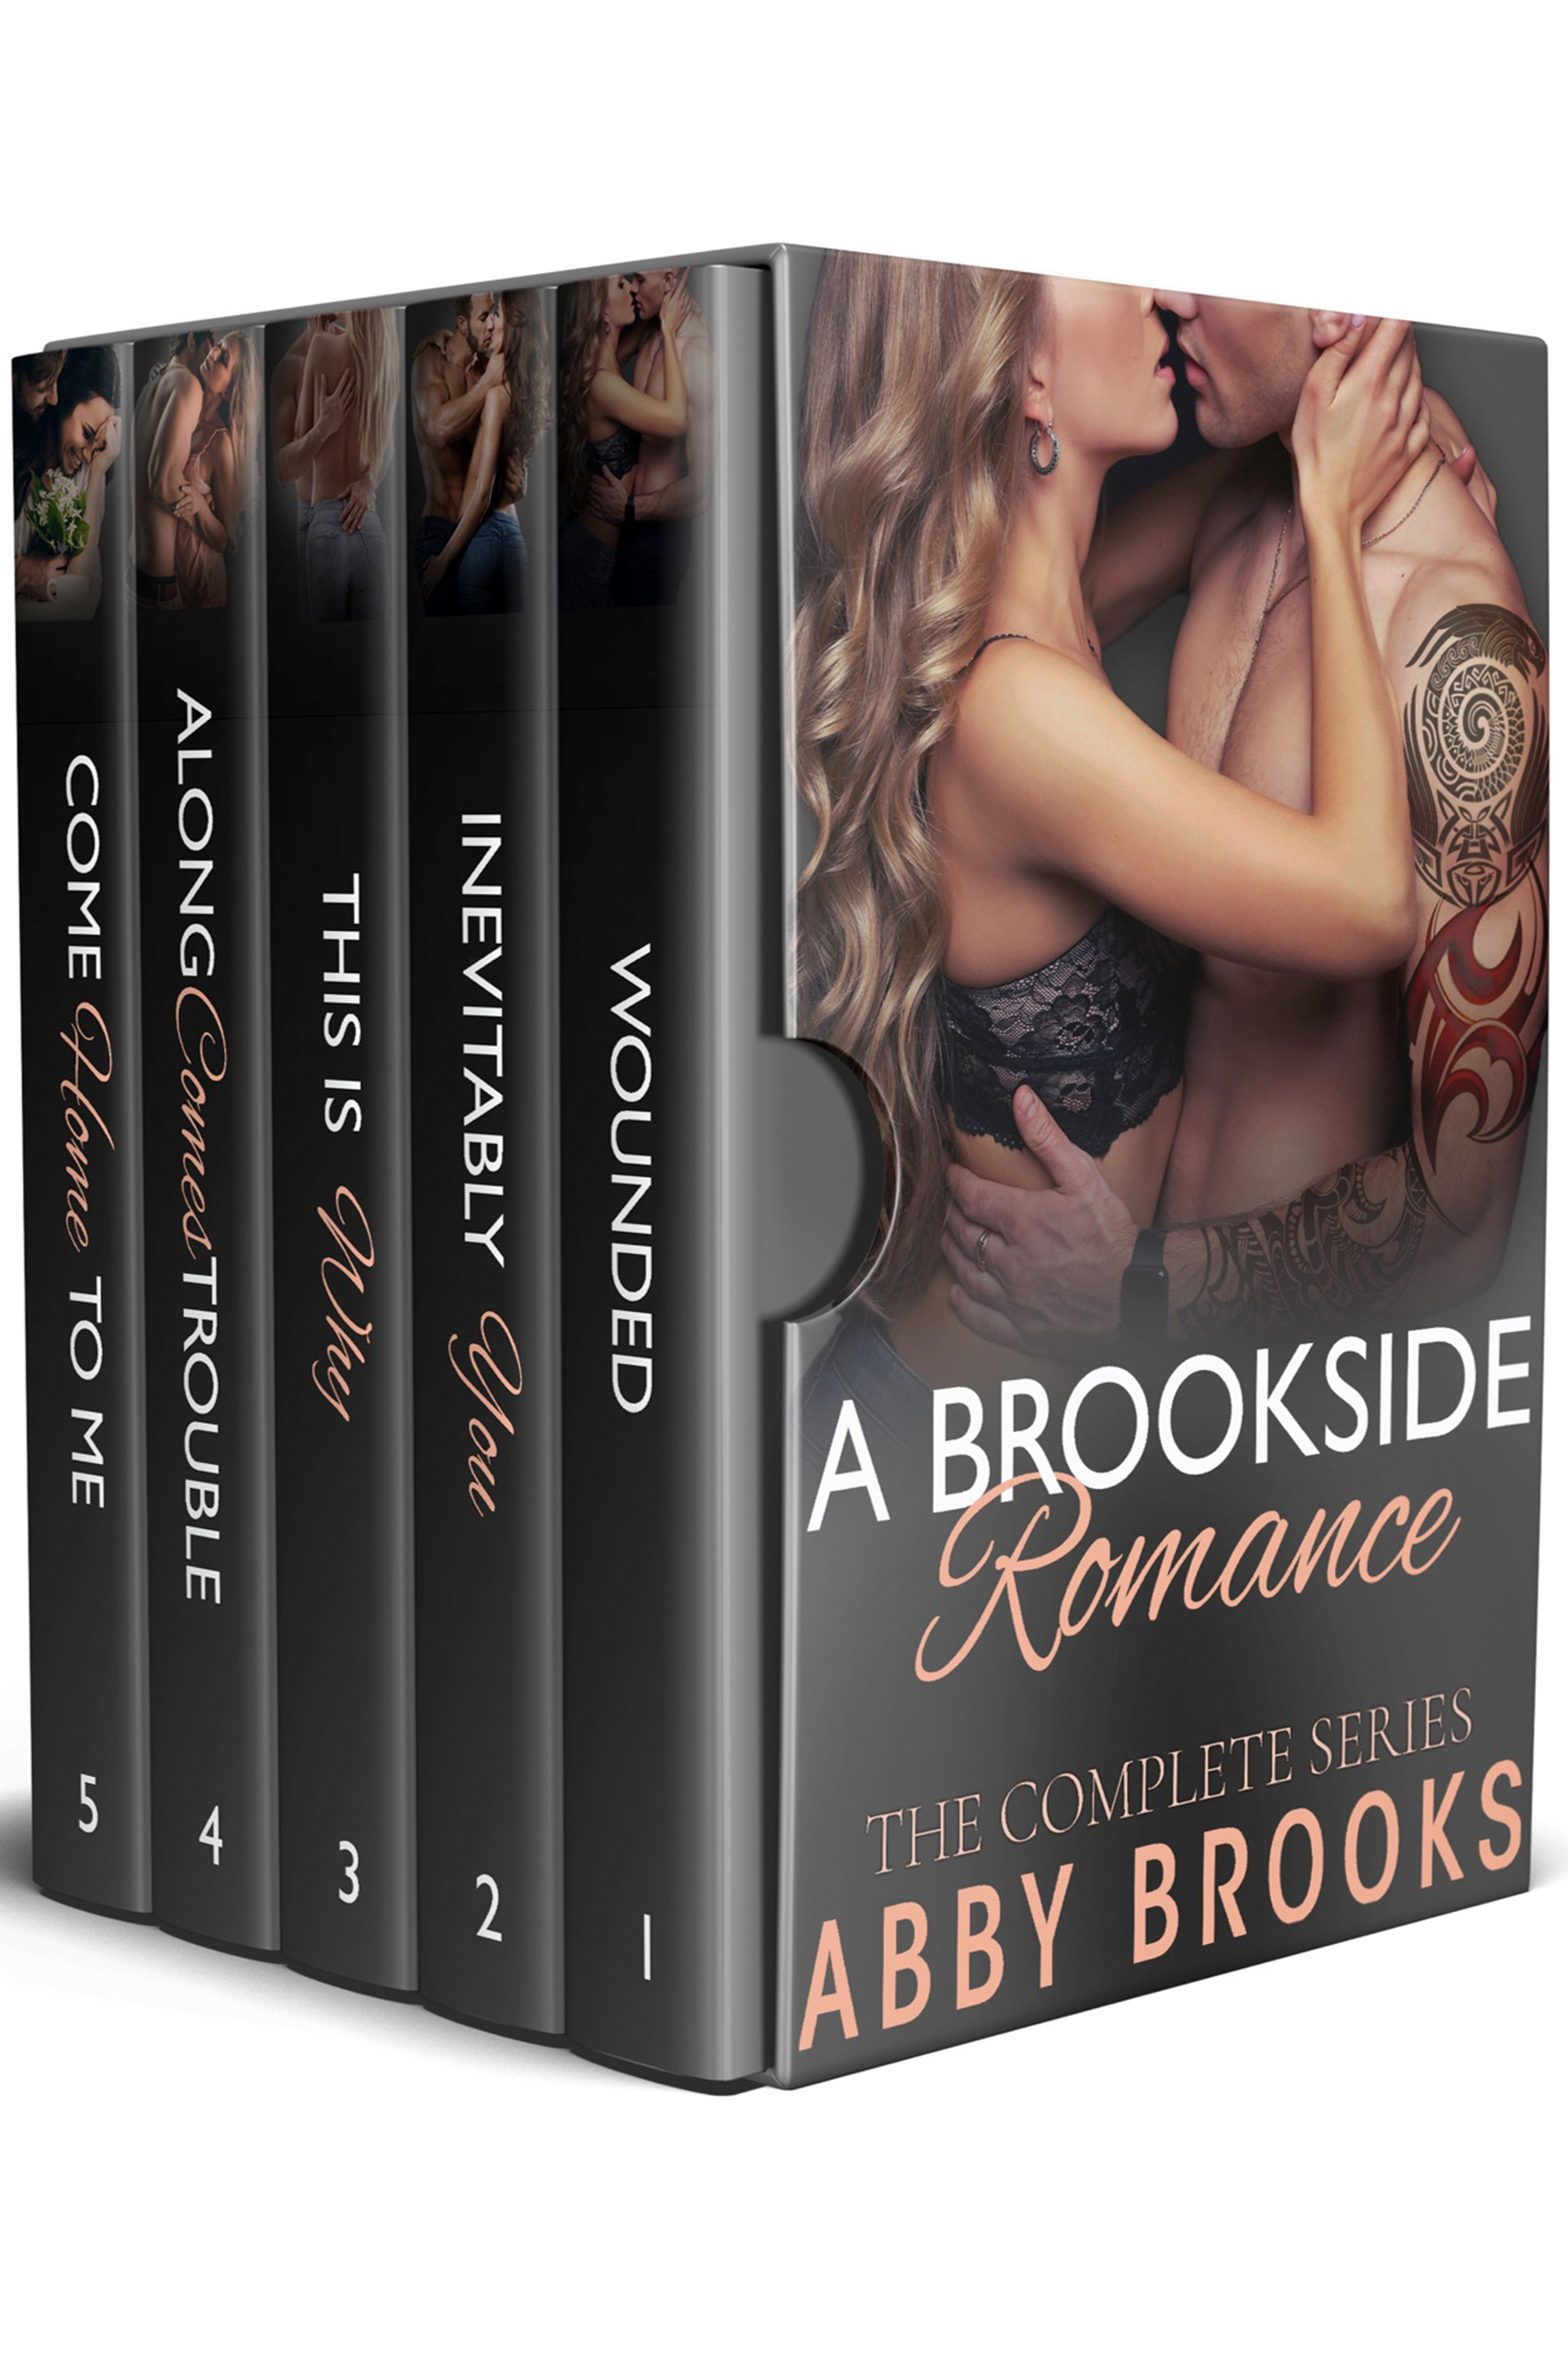 A Brookside Romance - The complete series